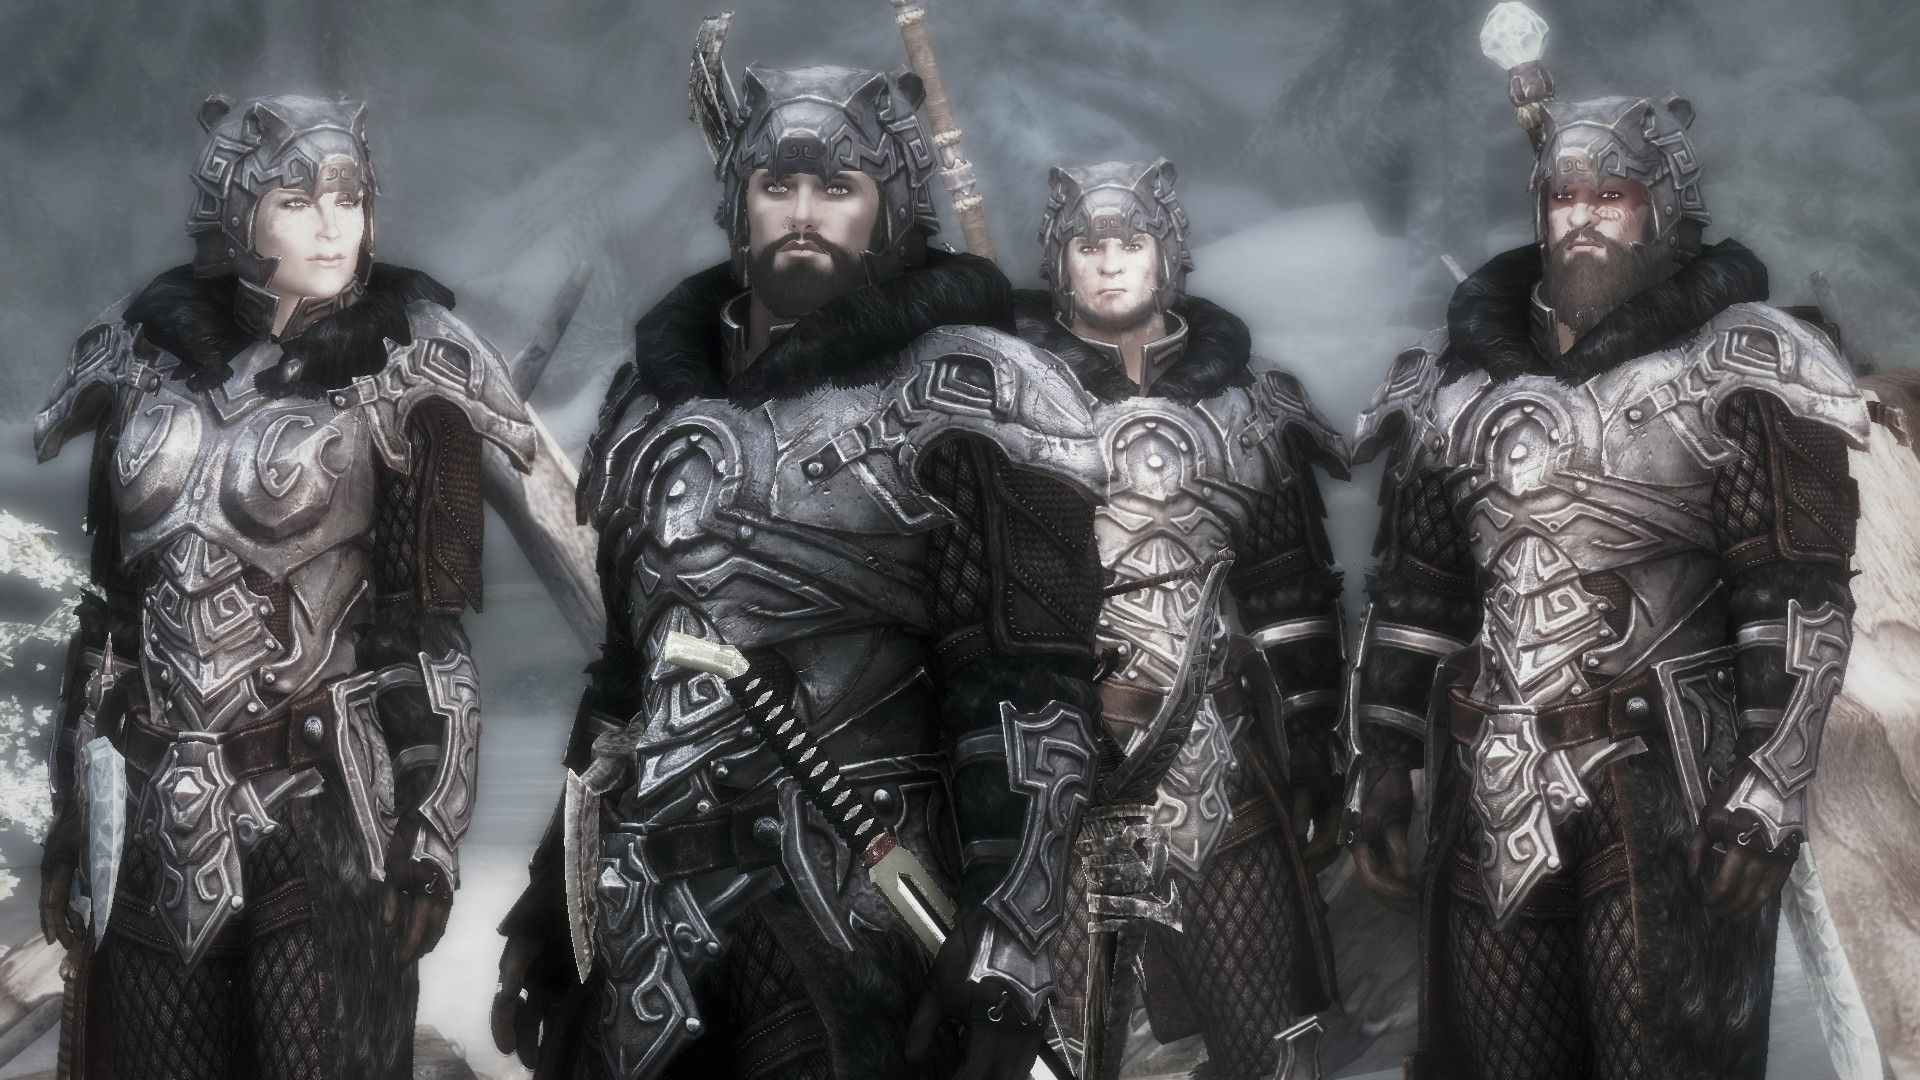 nordic carved armor from skyrim cosplay how tos and ideas